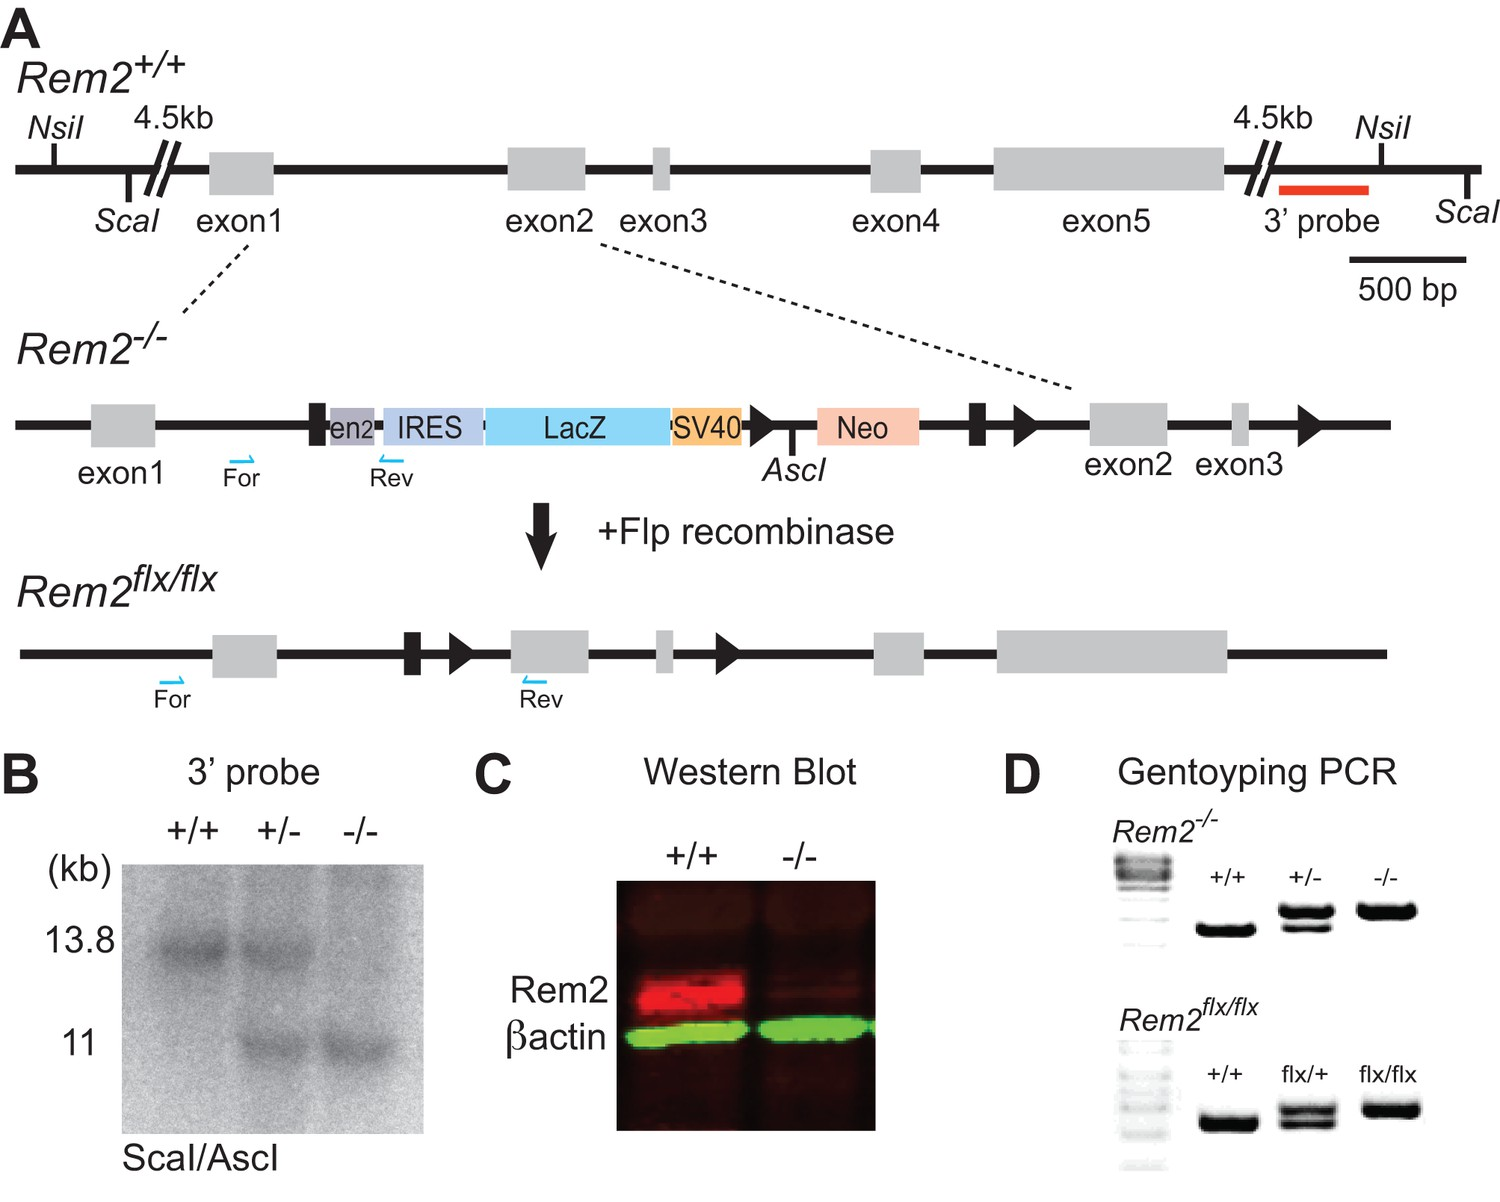 Rem2 Stabilizes Intrinsic Excitability And Spontaneous Firing In R Rc Circuit Diagram Generation Of A Knockout Mouse